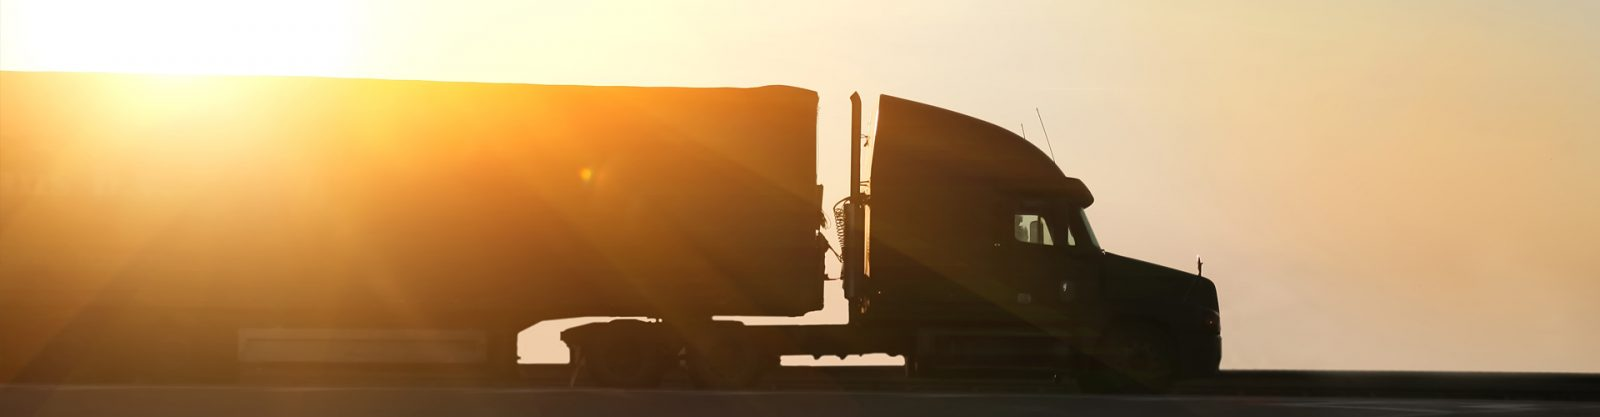 Sunset Trucking